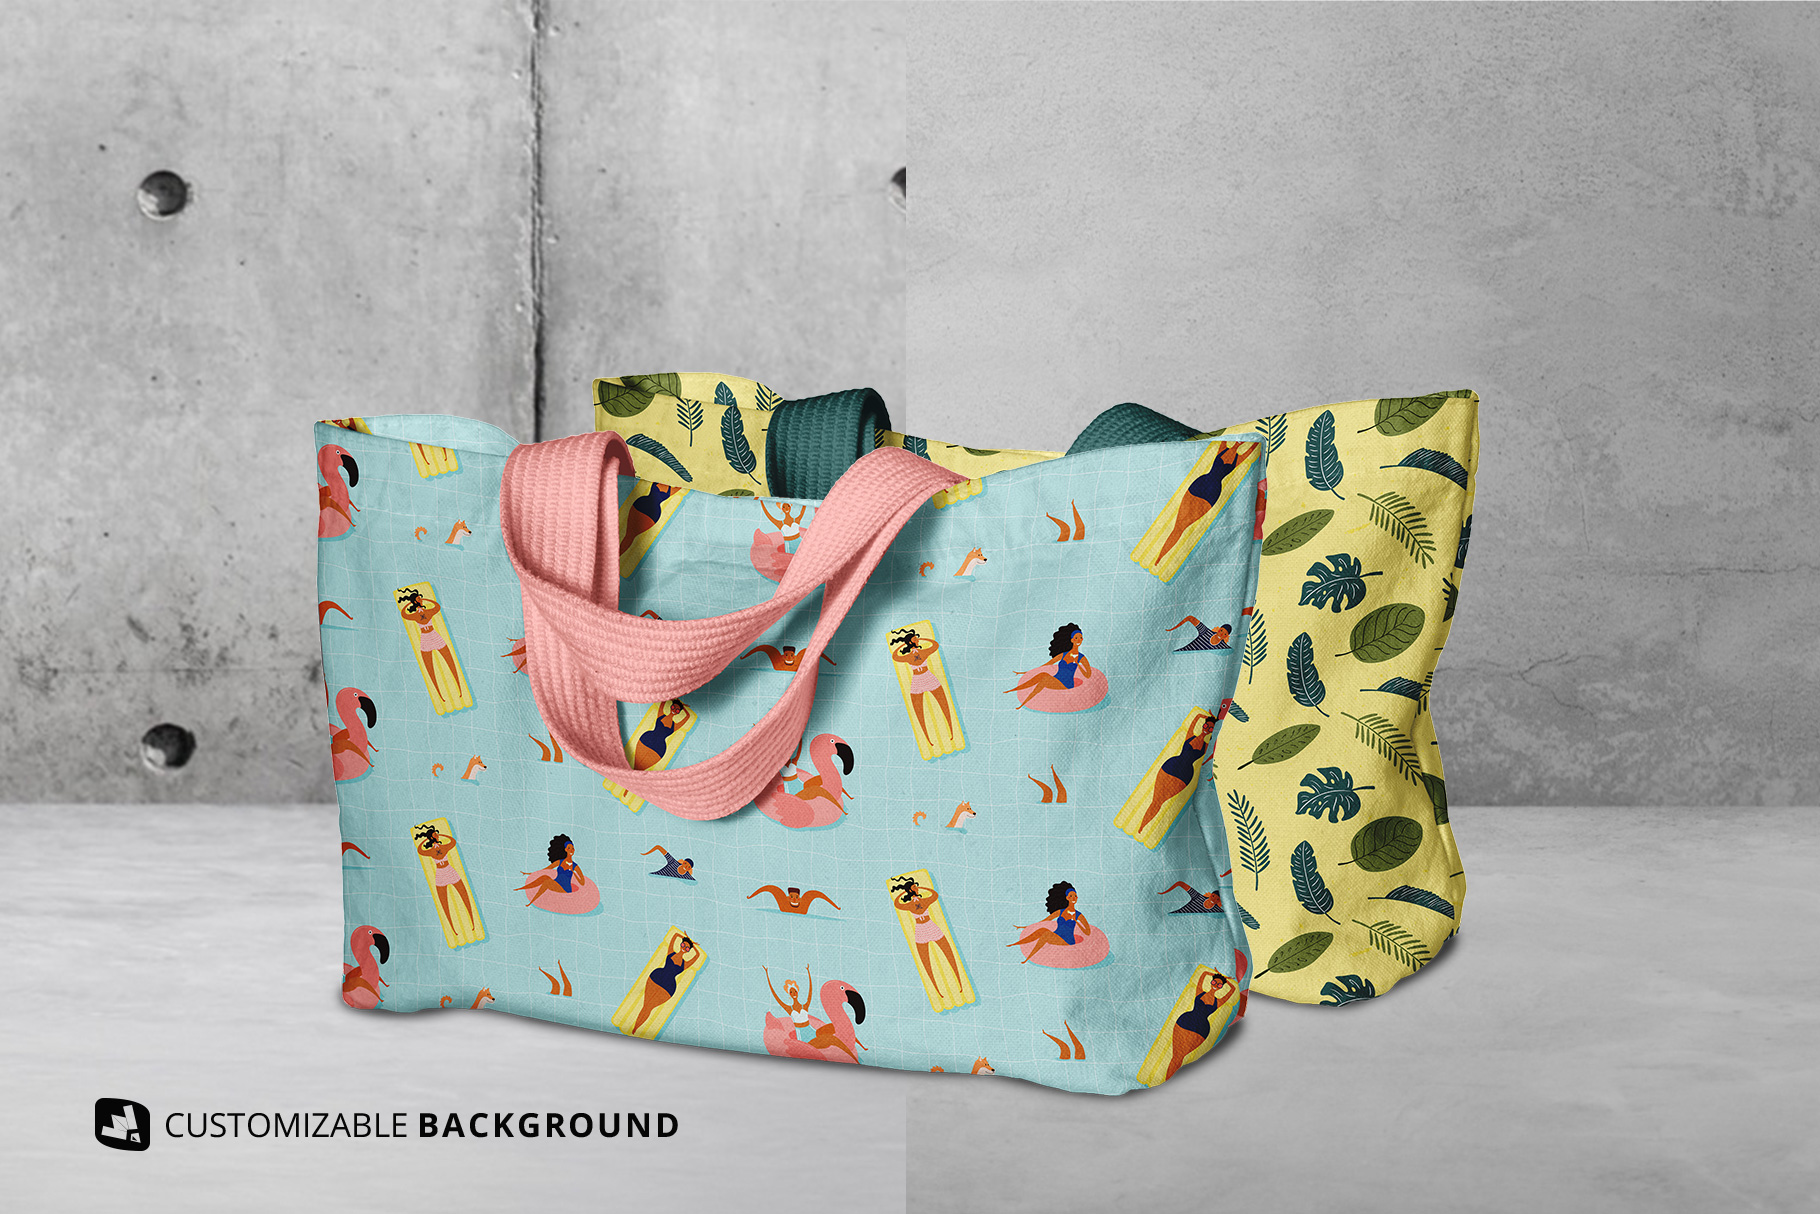 background options of the reusable cotton cloth bag mockup